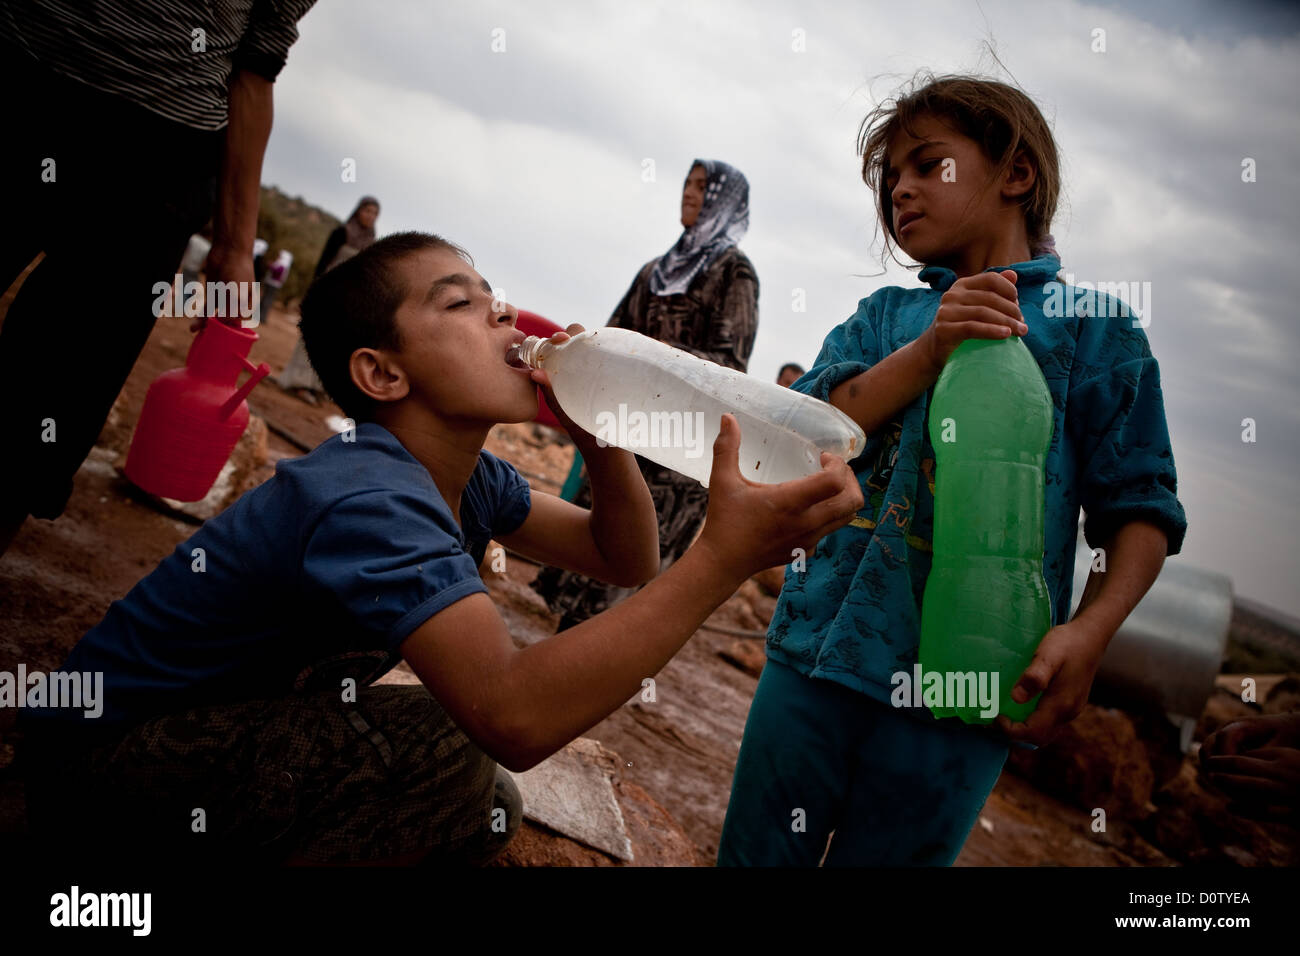 02/10/12, Atmah refugee camp, Atmah, Syria. Children tentatively sip the cloudy water supplied to them at the camp. - Stock Image